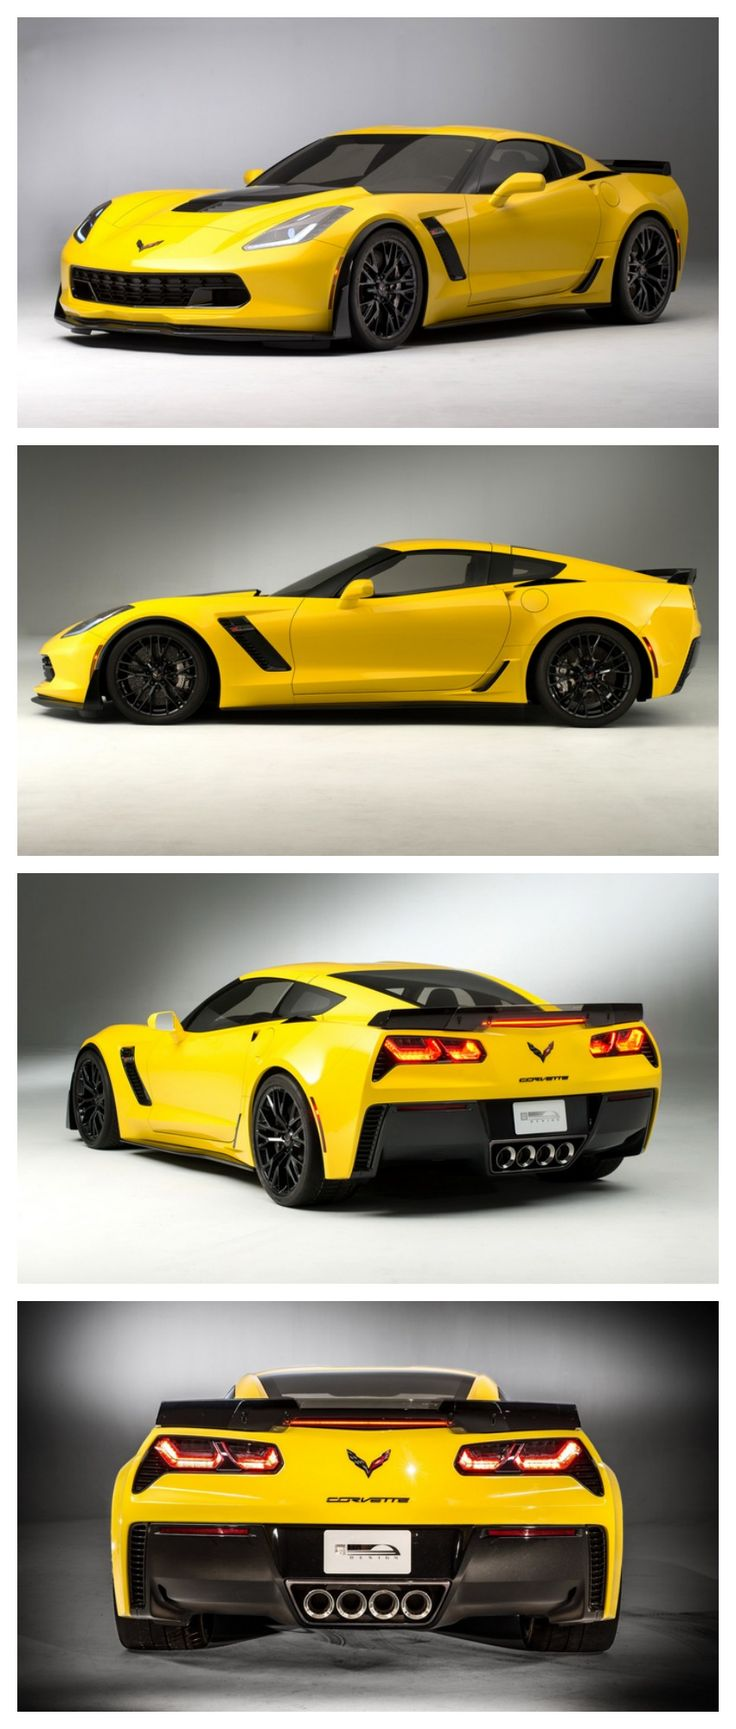 Yes! Supercharged Chevy C7 Stingray #AutoAwesome